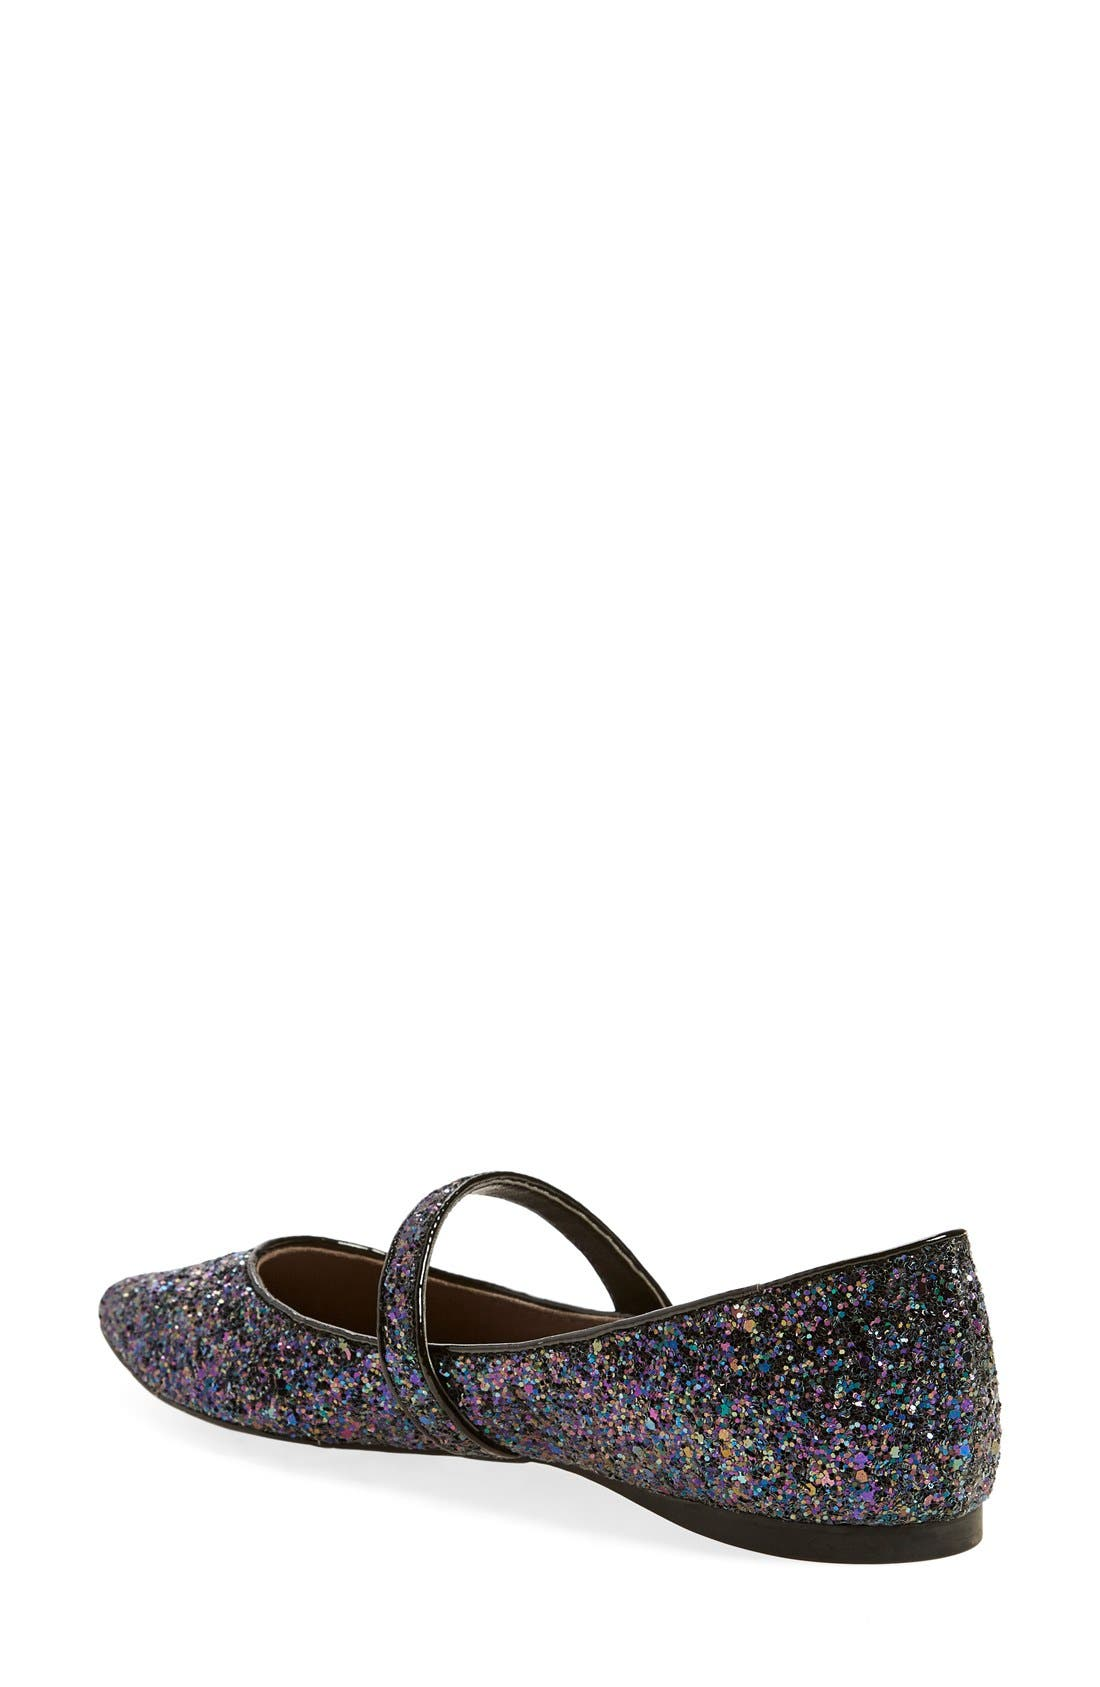 Alternate Image 2  - BP. 'Maribel' Mary Jane Glitter Flat (Women)